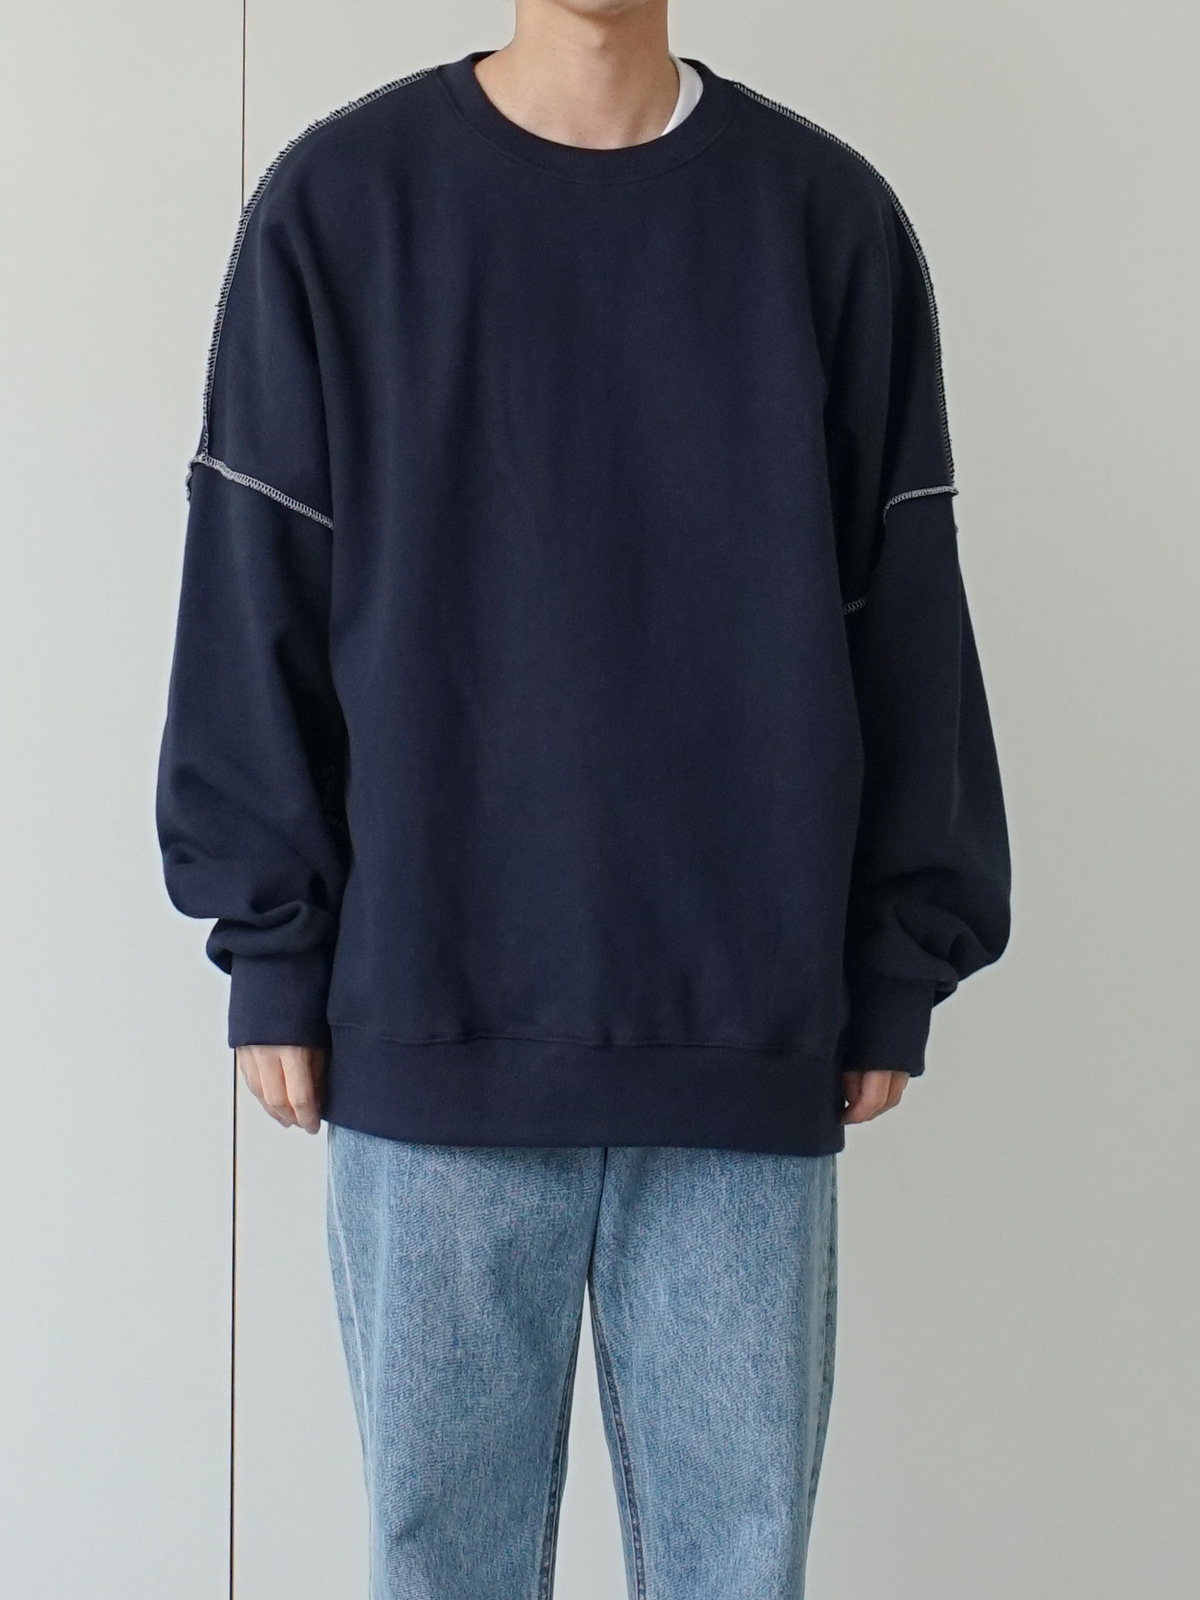 Out Stitch Over Sweatshirt (5color)